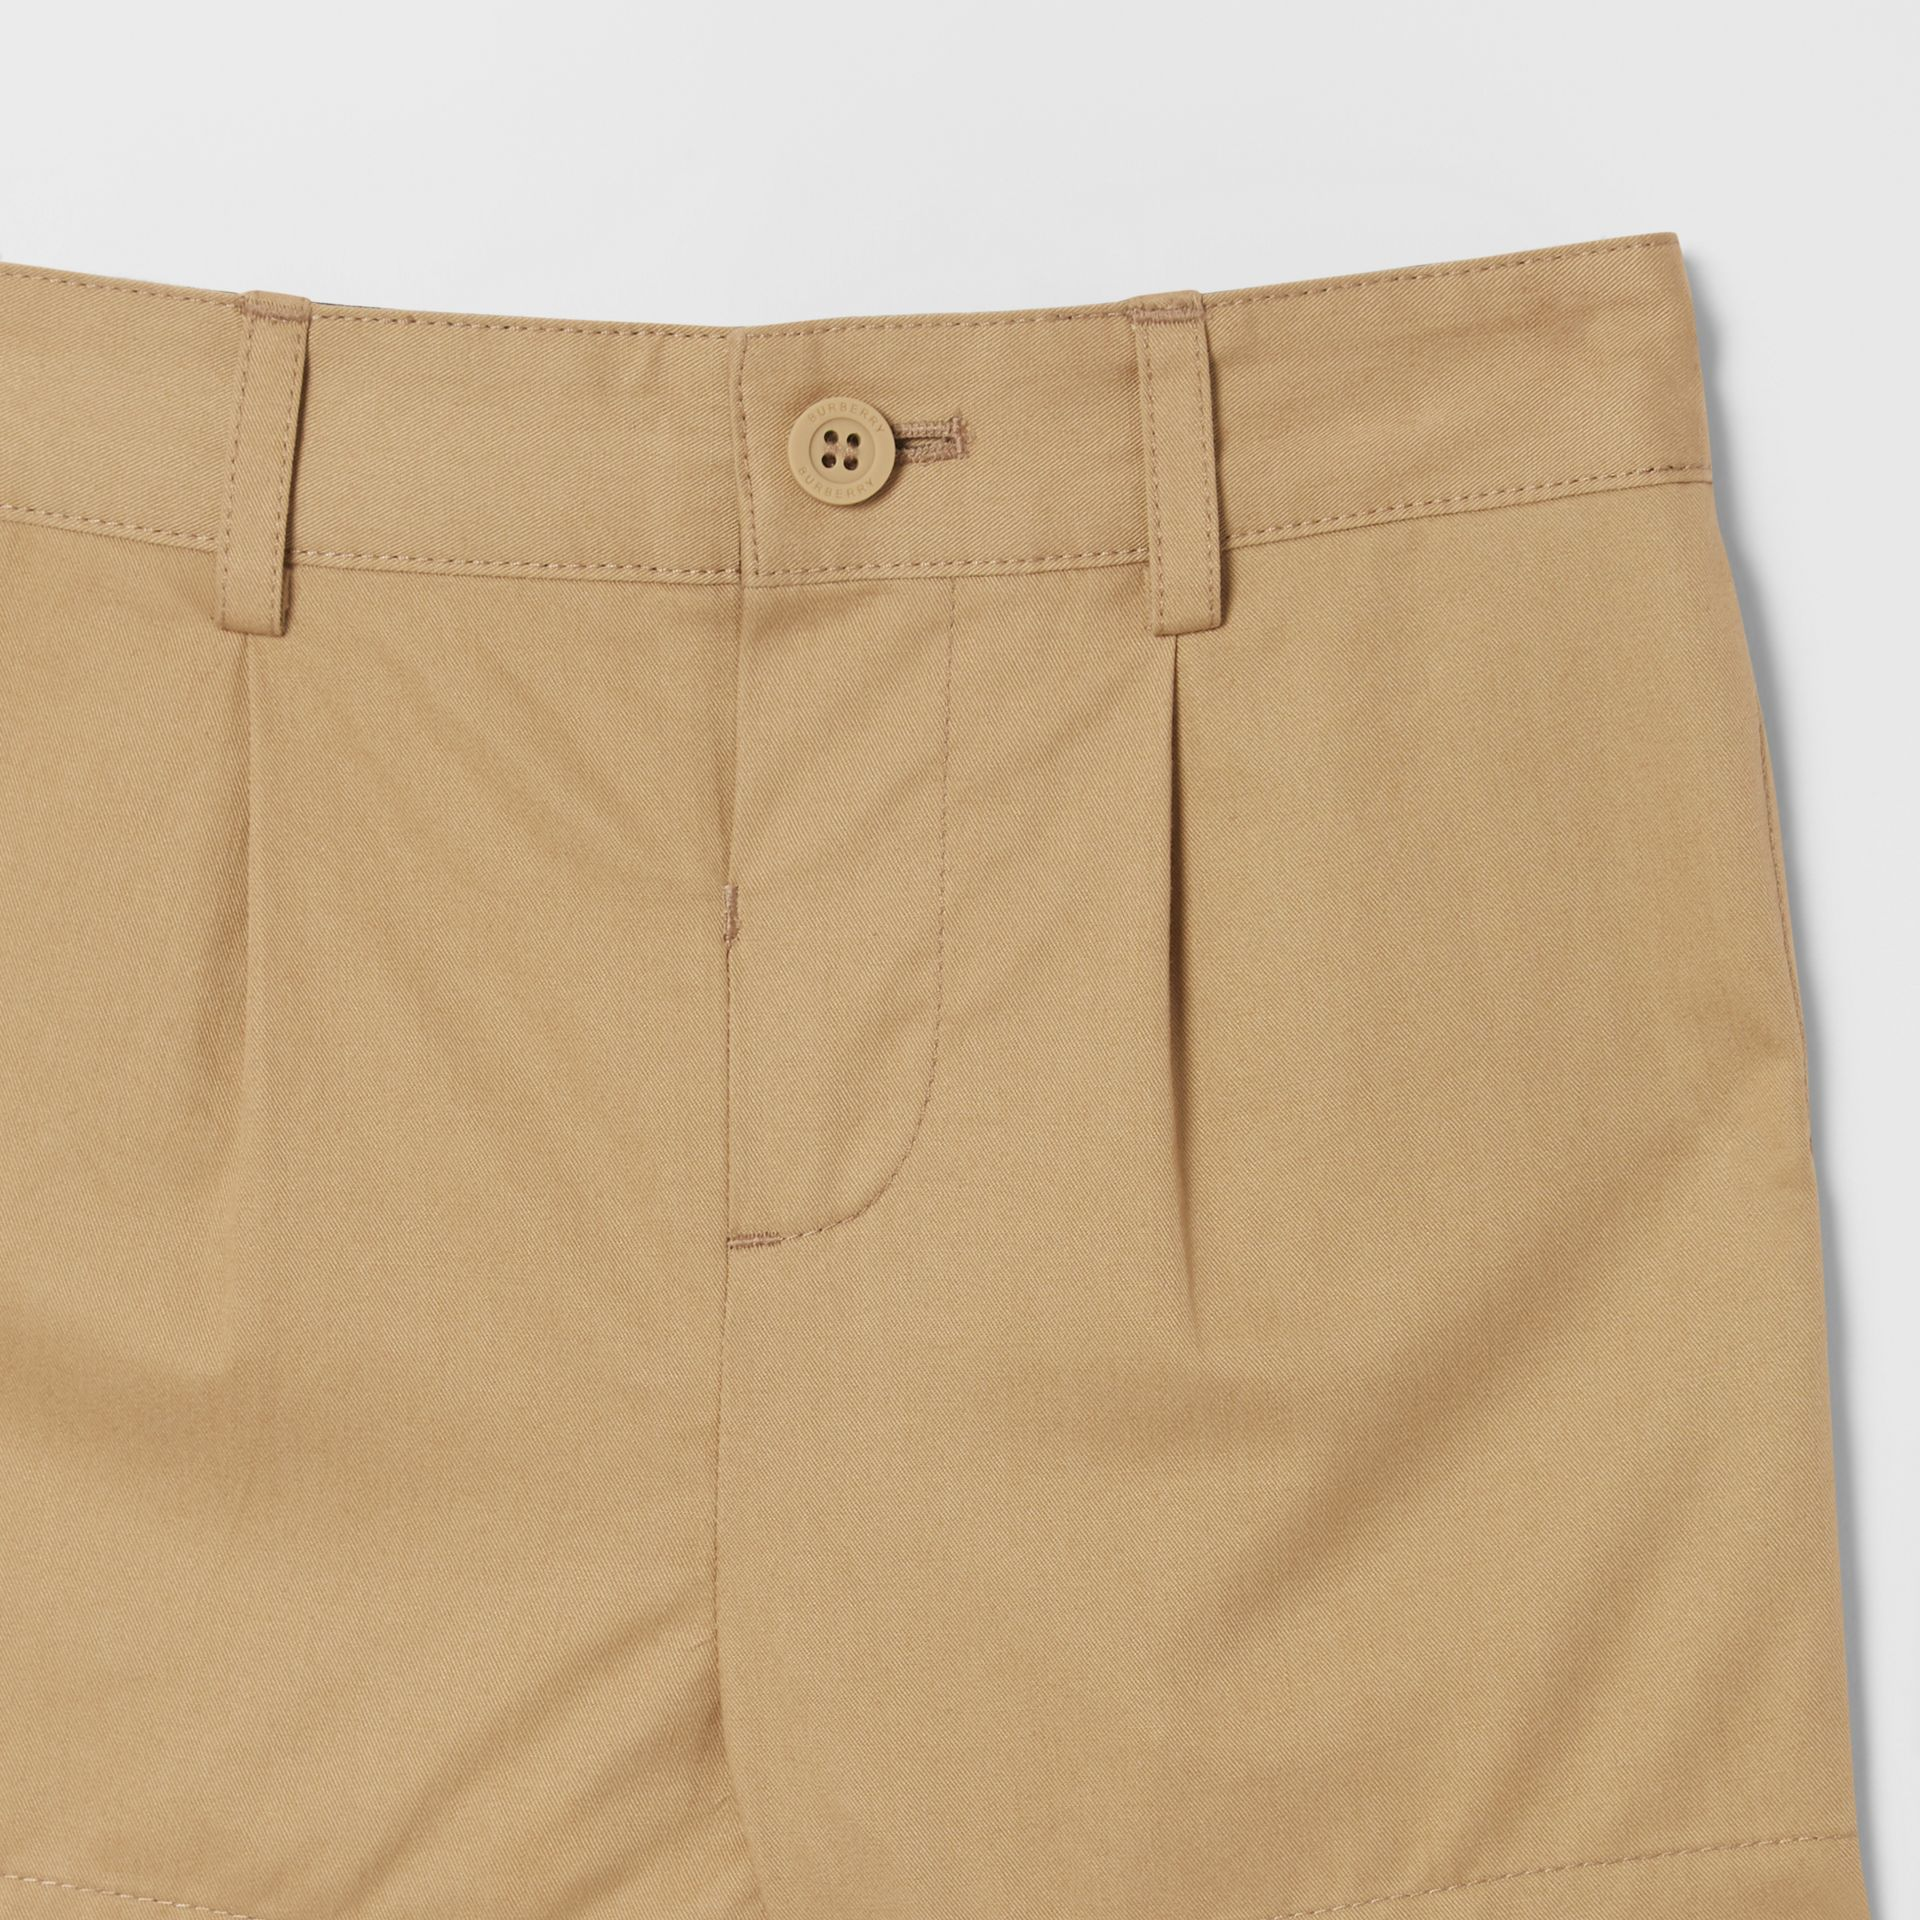 Logo Appliqué Cotton Twill Tailored Shorts in Archive Beige - Children | Burberry United States - gallery image 4